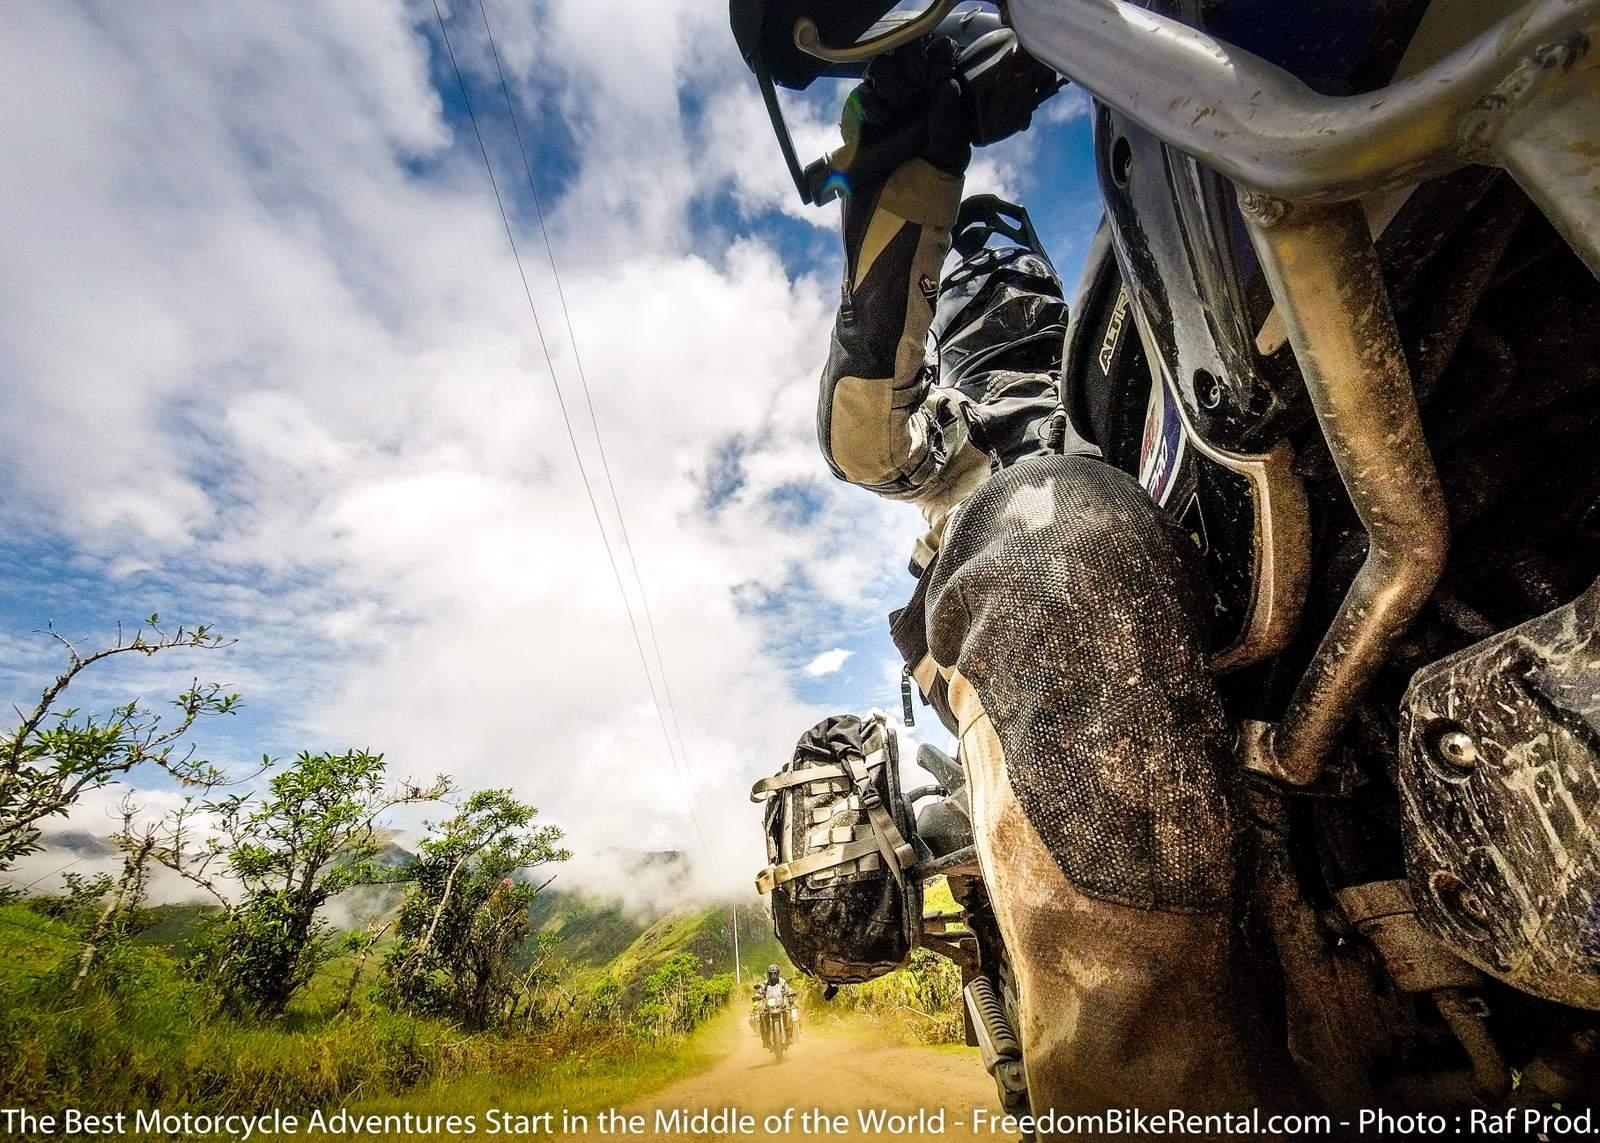 Riding motorcycles unpaved roads in Ecuador